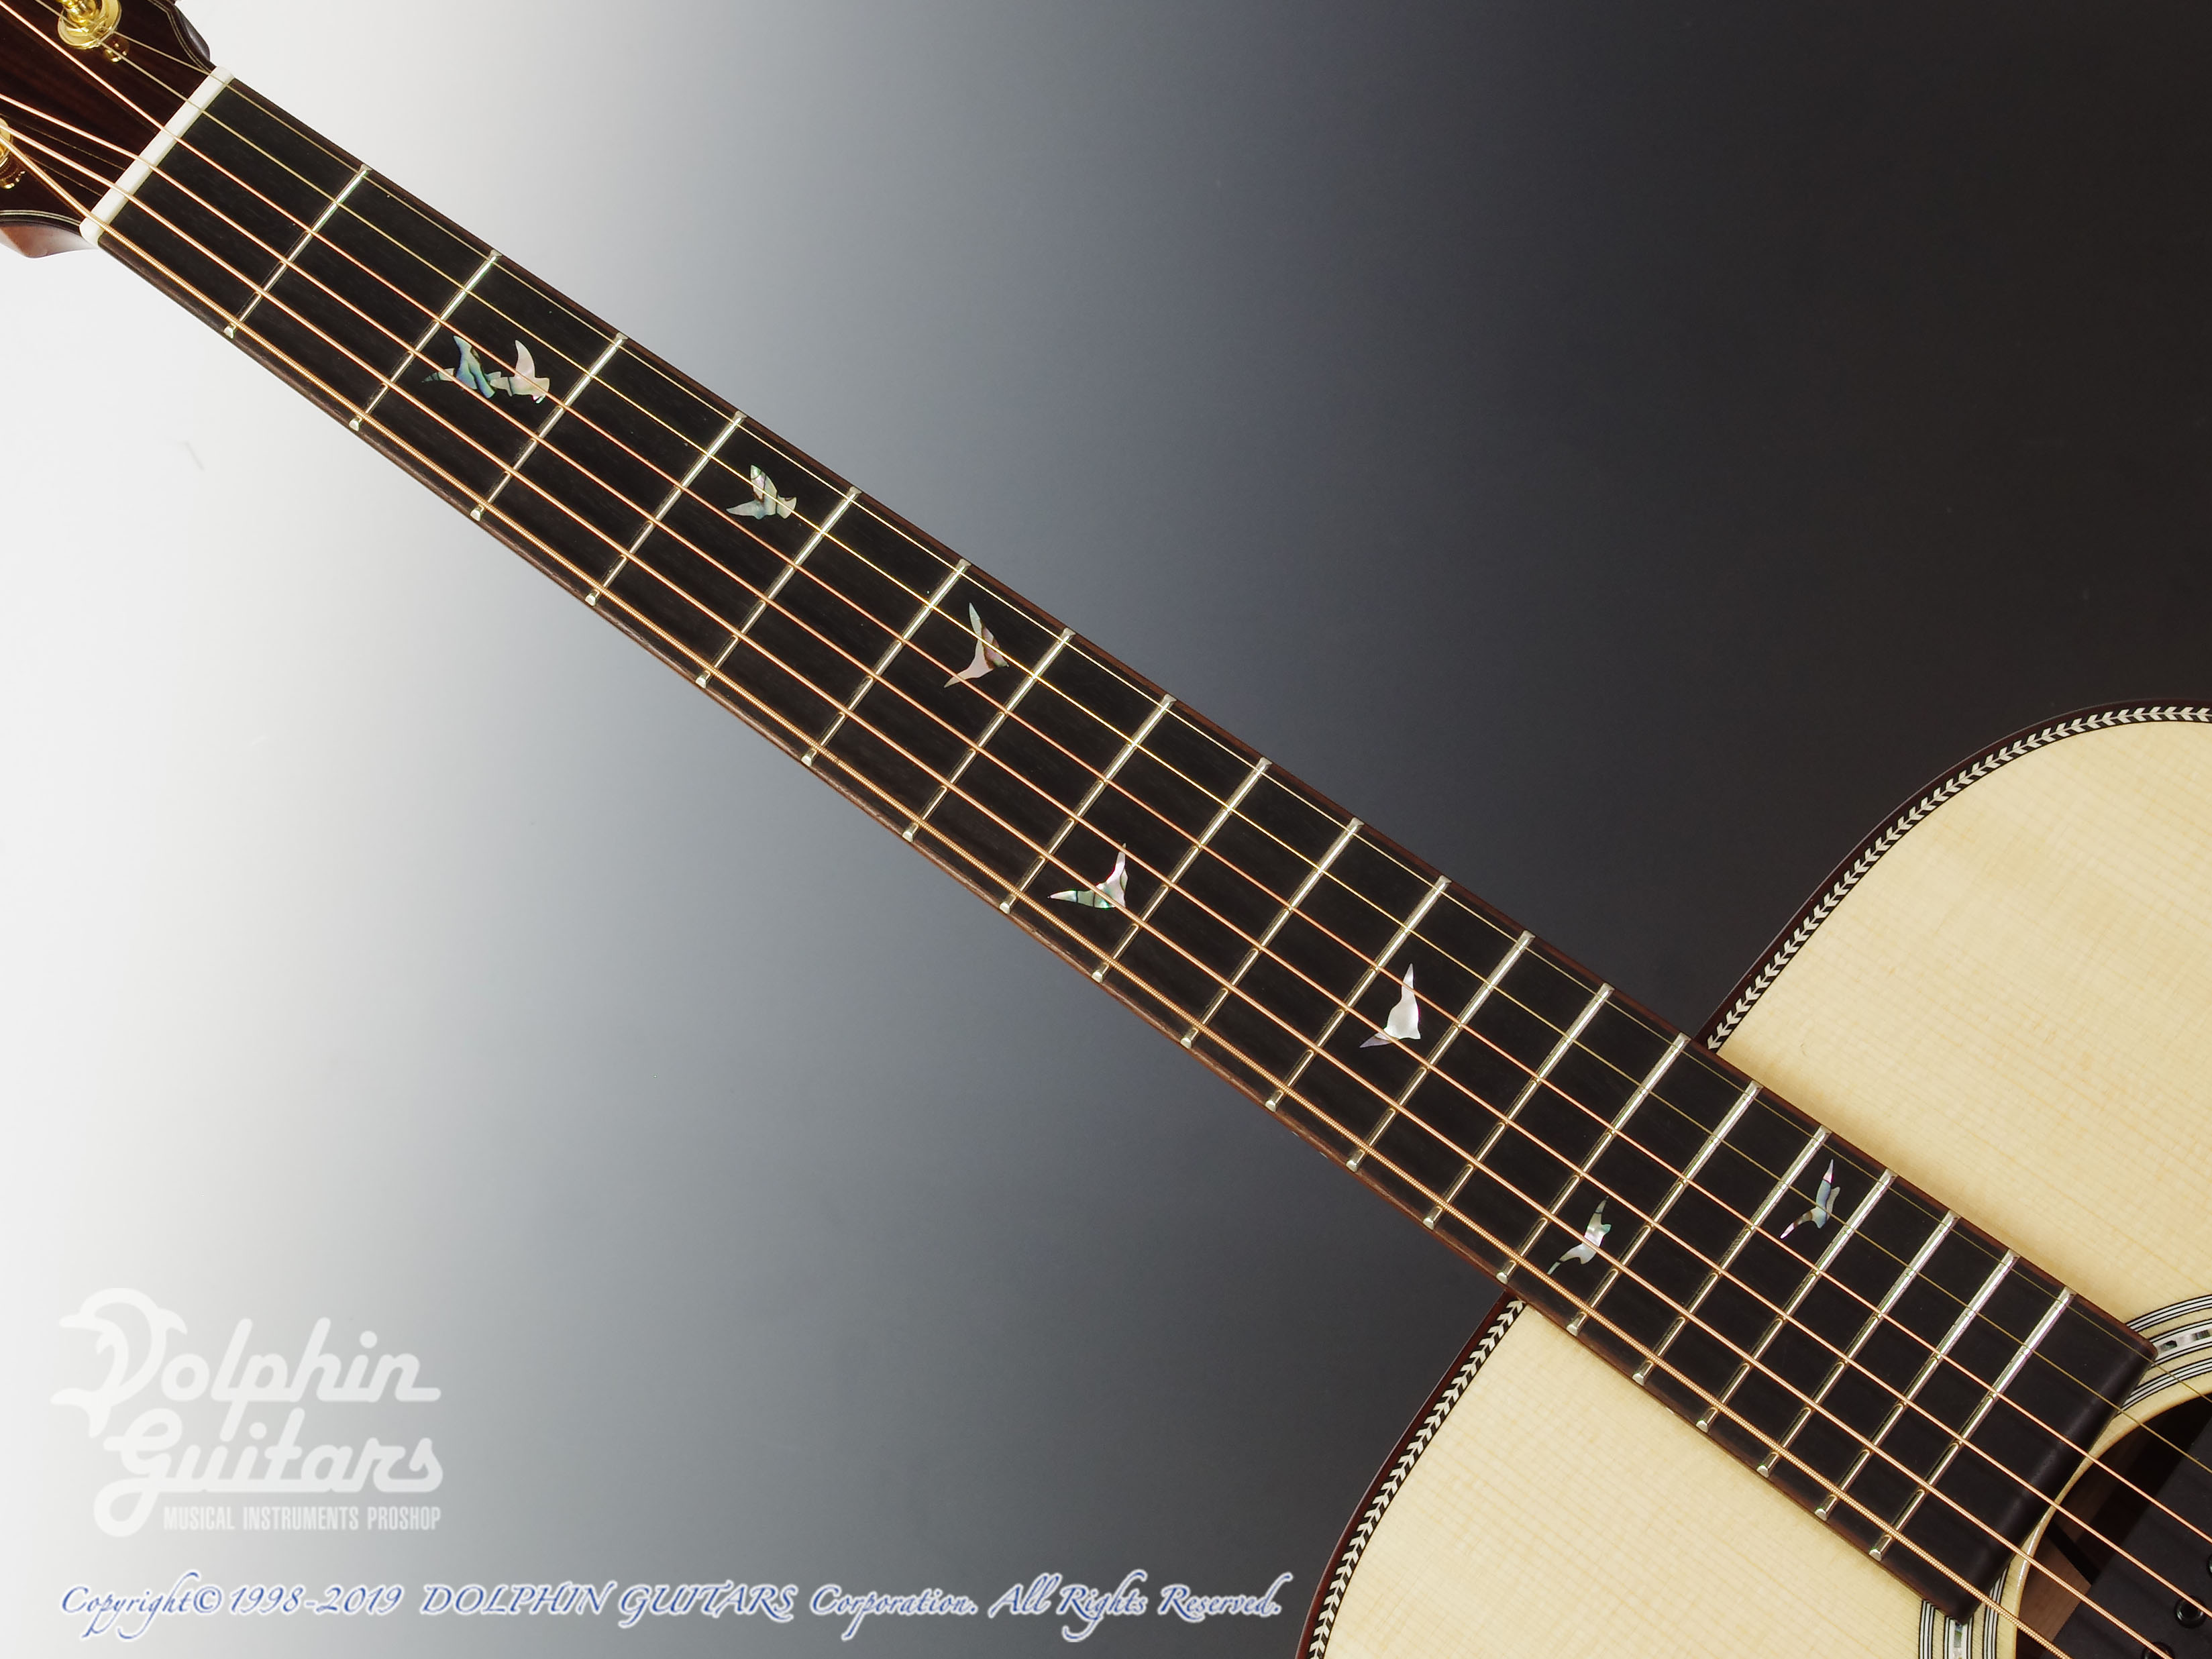 Greven Guitars Japan: Oshio-D HR (Honduras Rosewood) w/RAPTOR SYSTEM by TRIAL  (4)